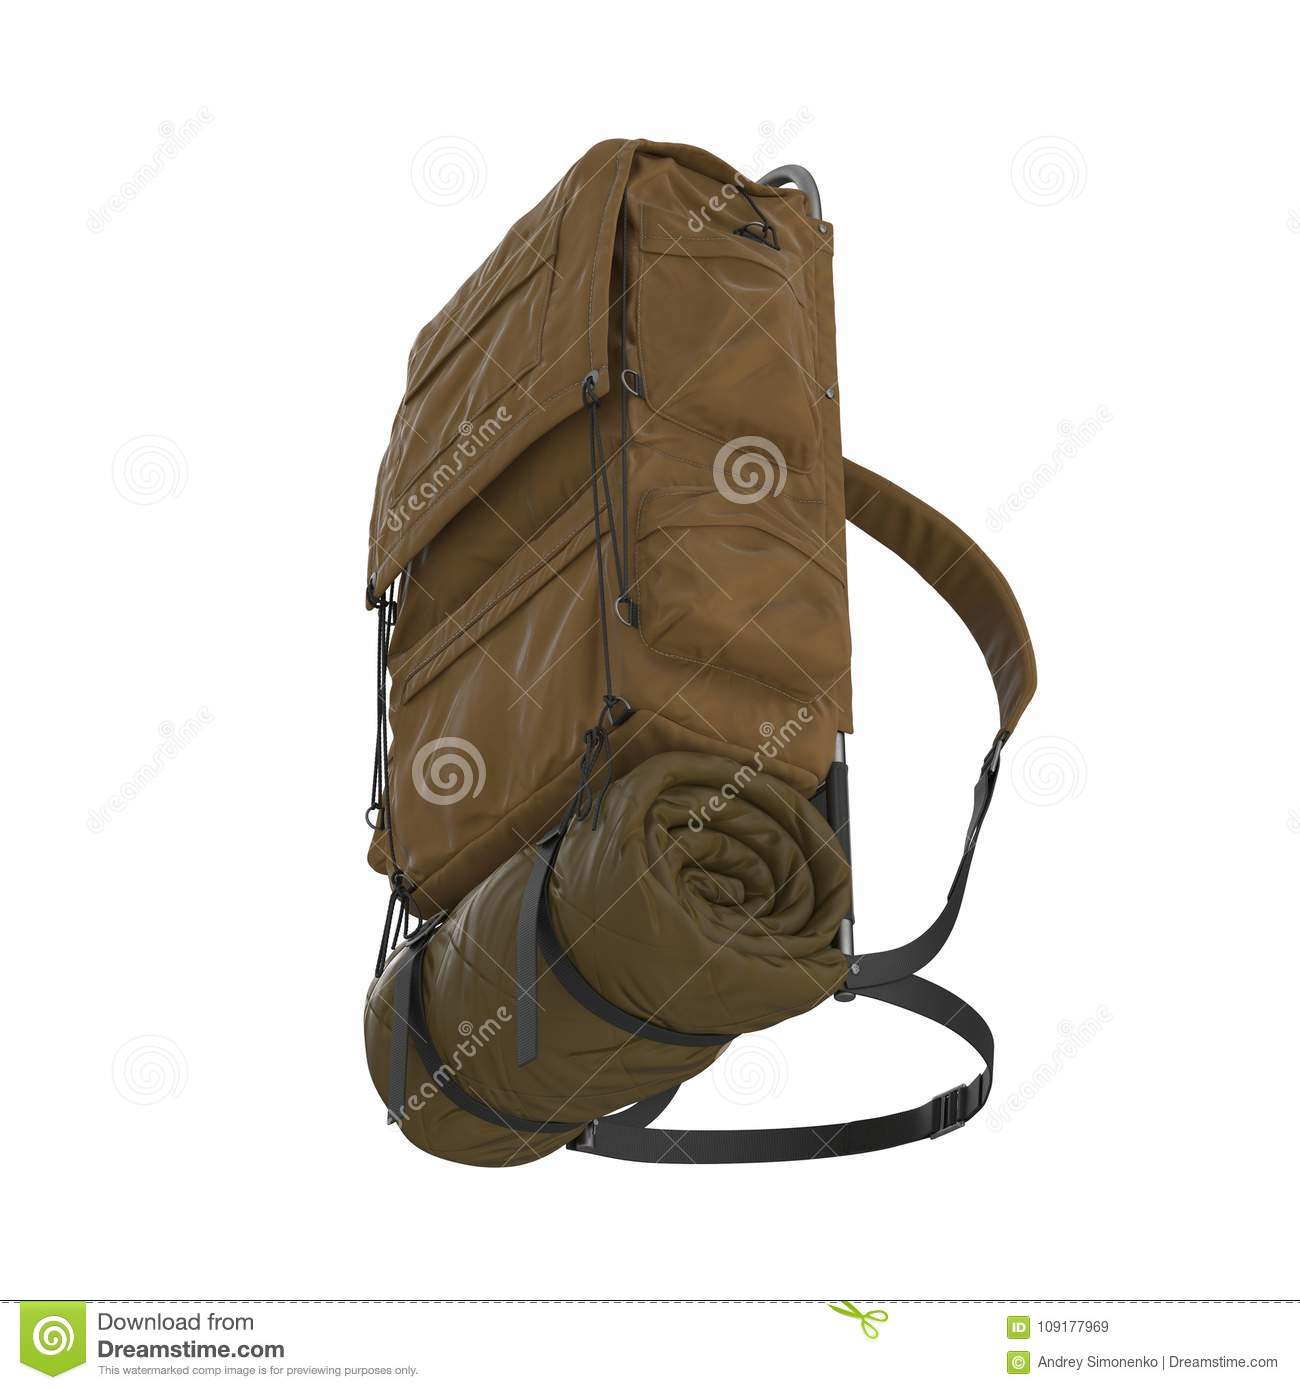 Tourist backpack isolated on a white background. 3D illustration. More  similar stock illustrations 59ab08a67d22a